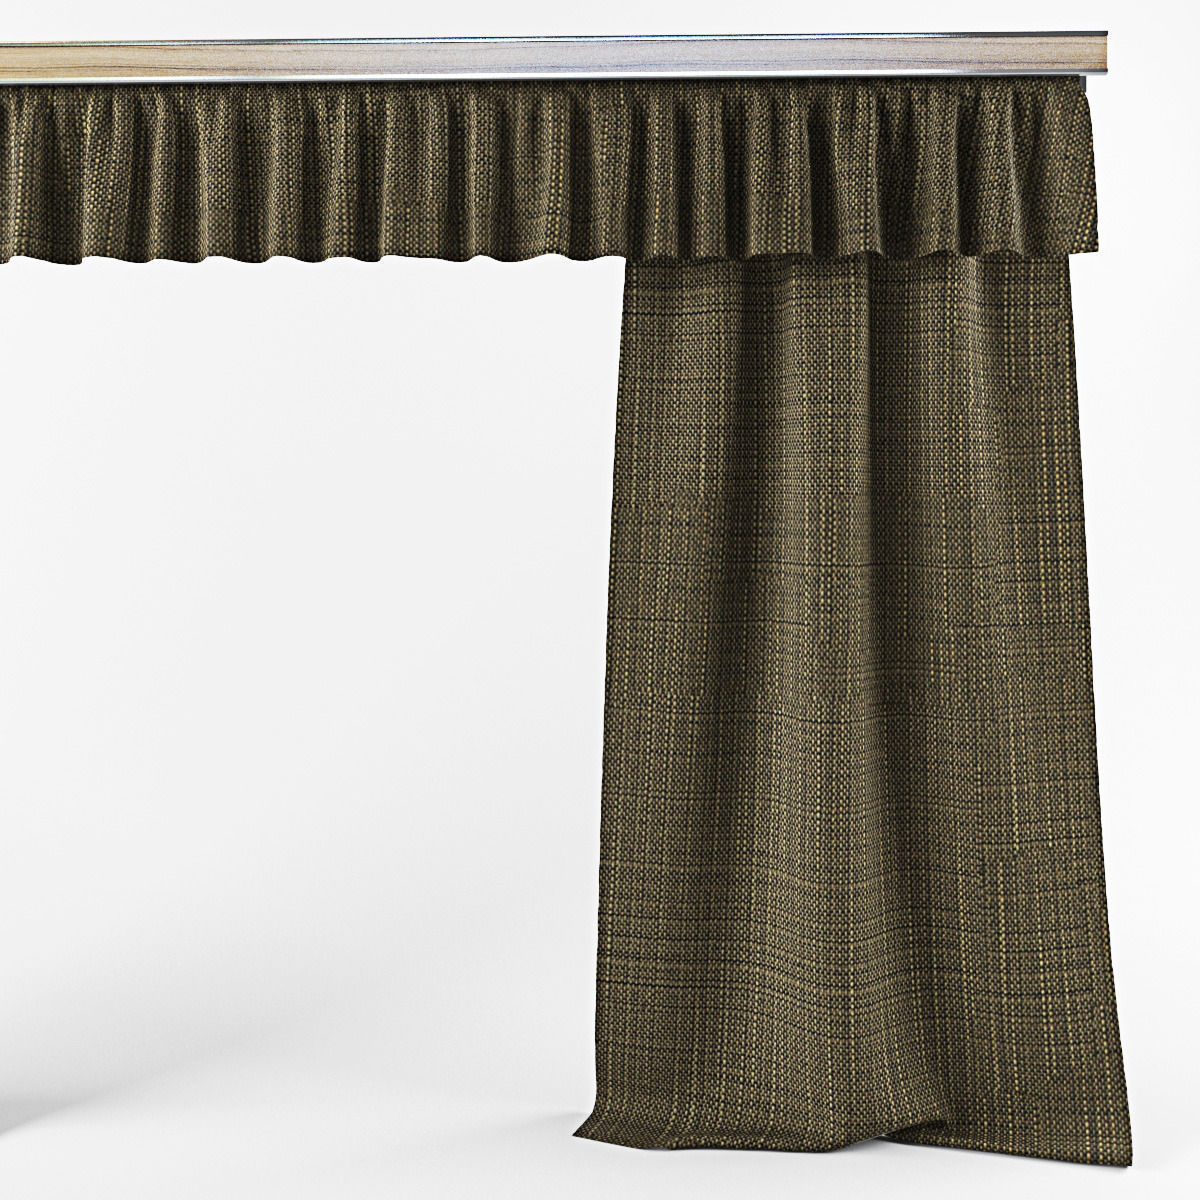 clearance bed kohls curtains sheer size beyond walmart catalogue and modern bath valances full t wayfair treatment window for of shades jcpenney curtain contemporary room simple living design treatments short kitchen